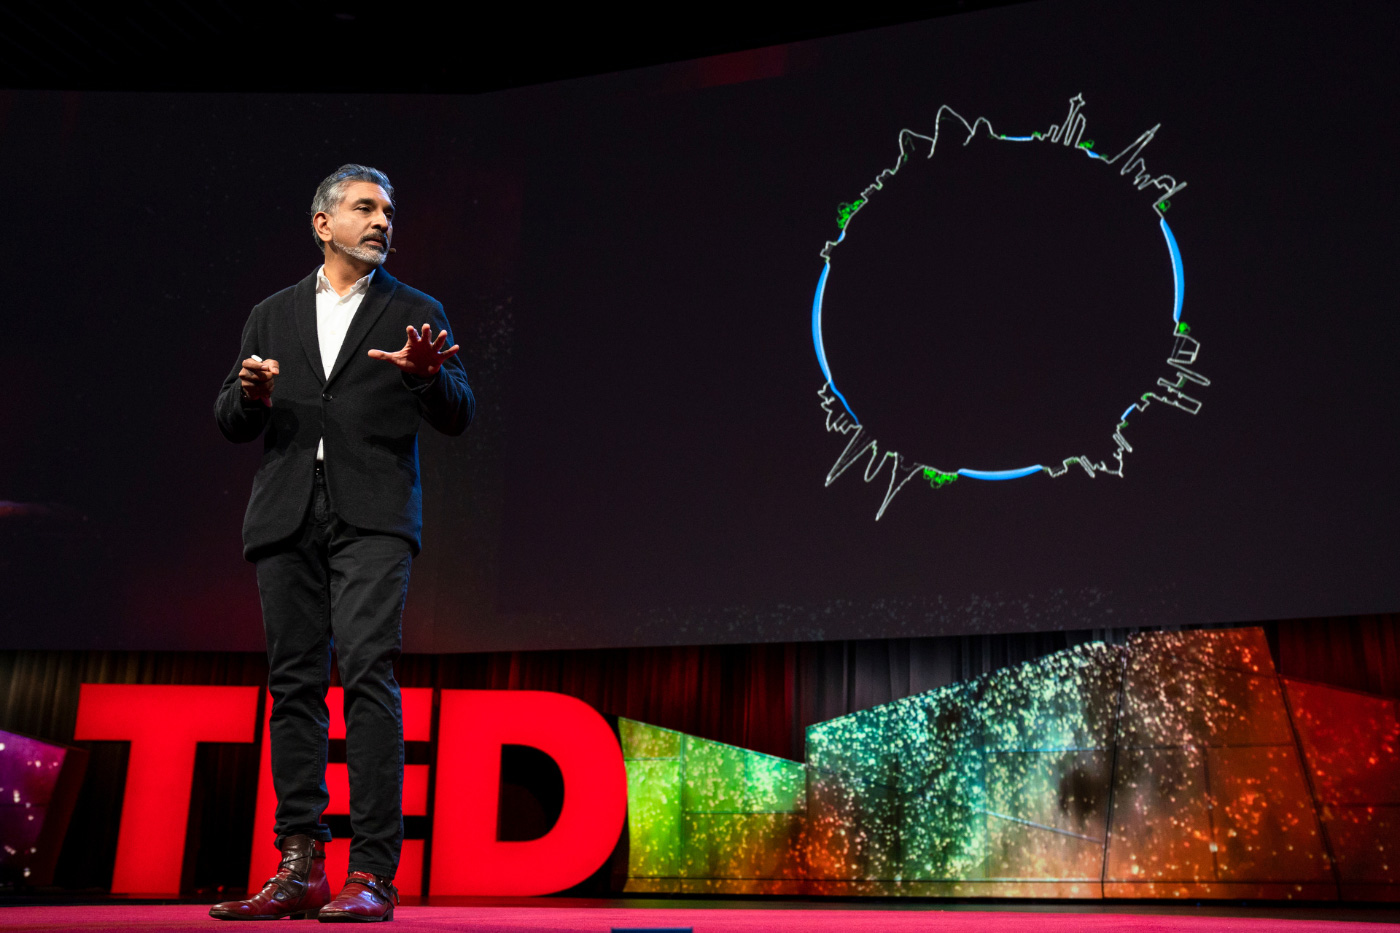 An indian man in a black suit on a stage, with the letters TED in large text